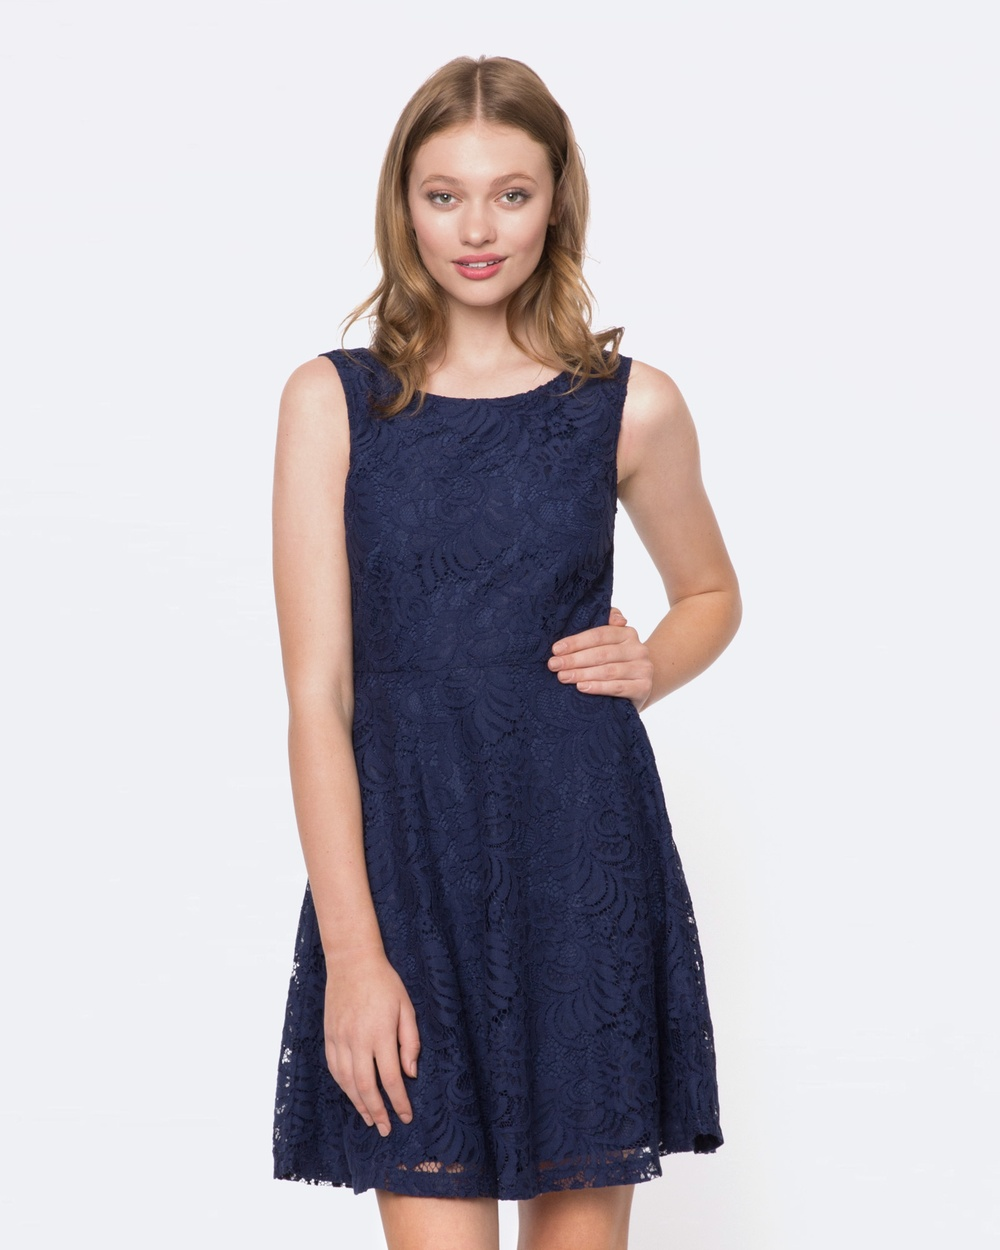 Princess Highway Sophia Dress Printed Dresses Blue Sophia Dress